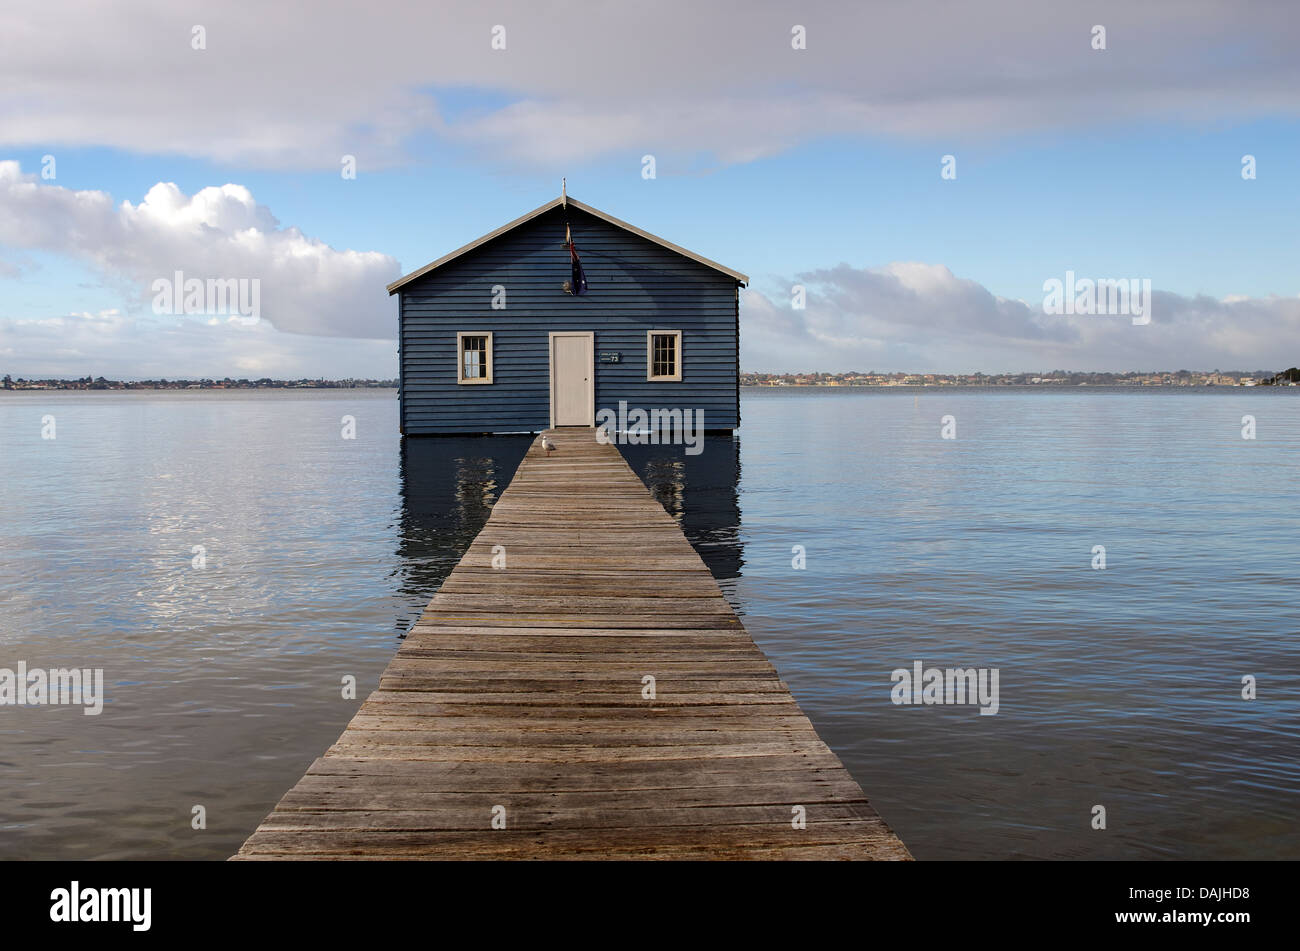 Crawley boat house, Perth, Western Australia - Stock Image